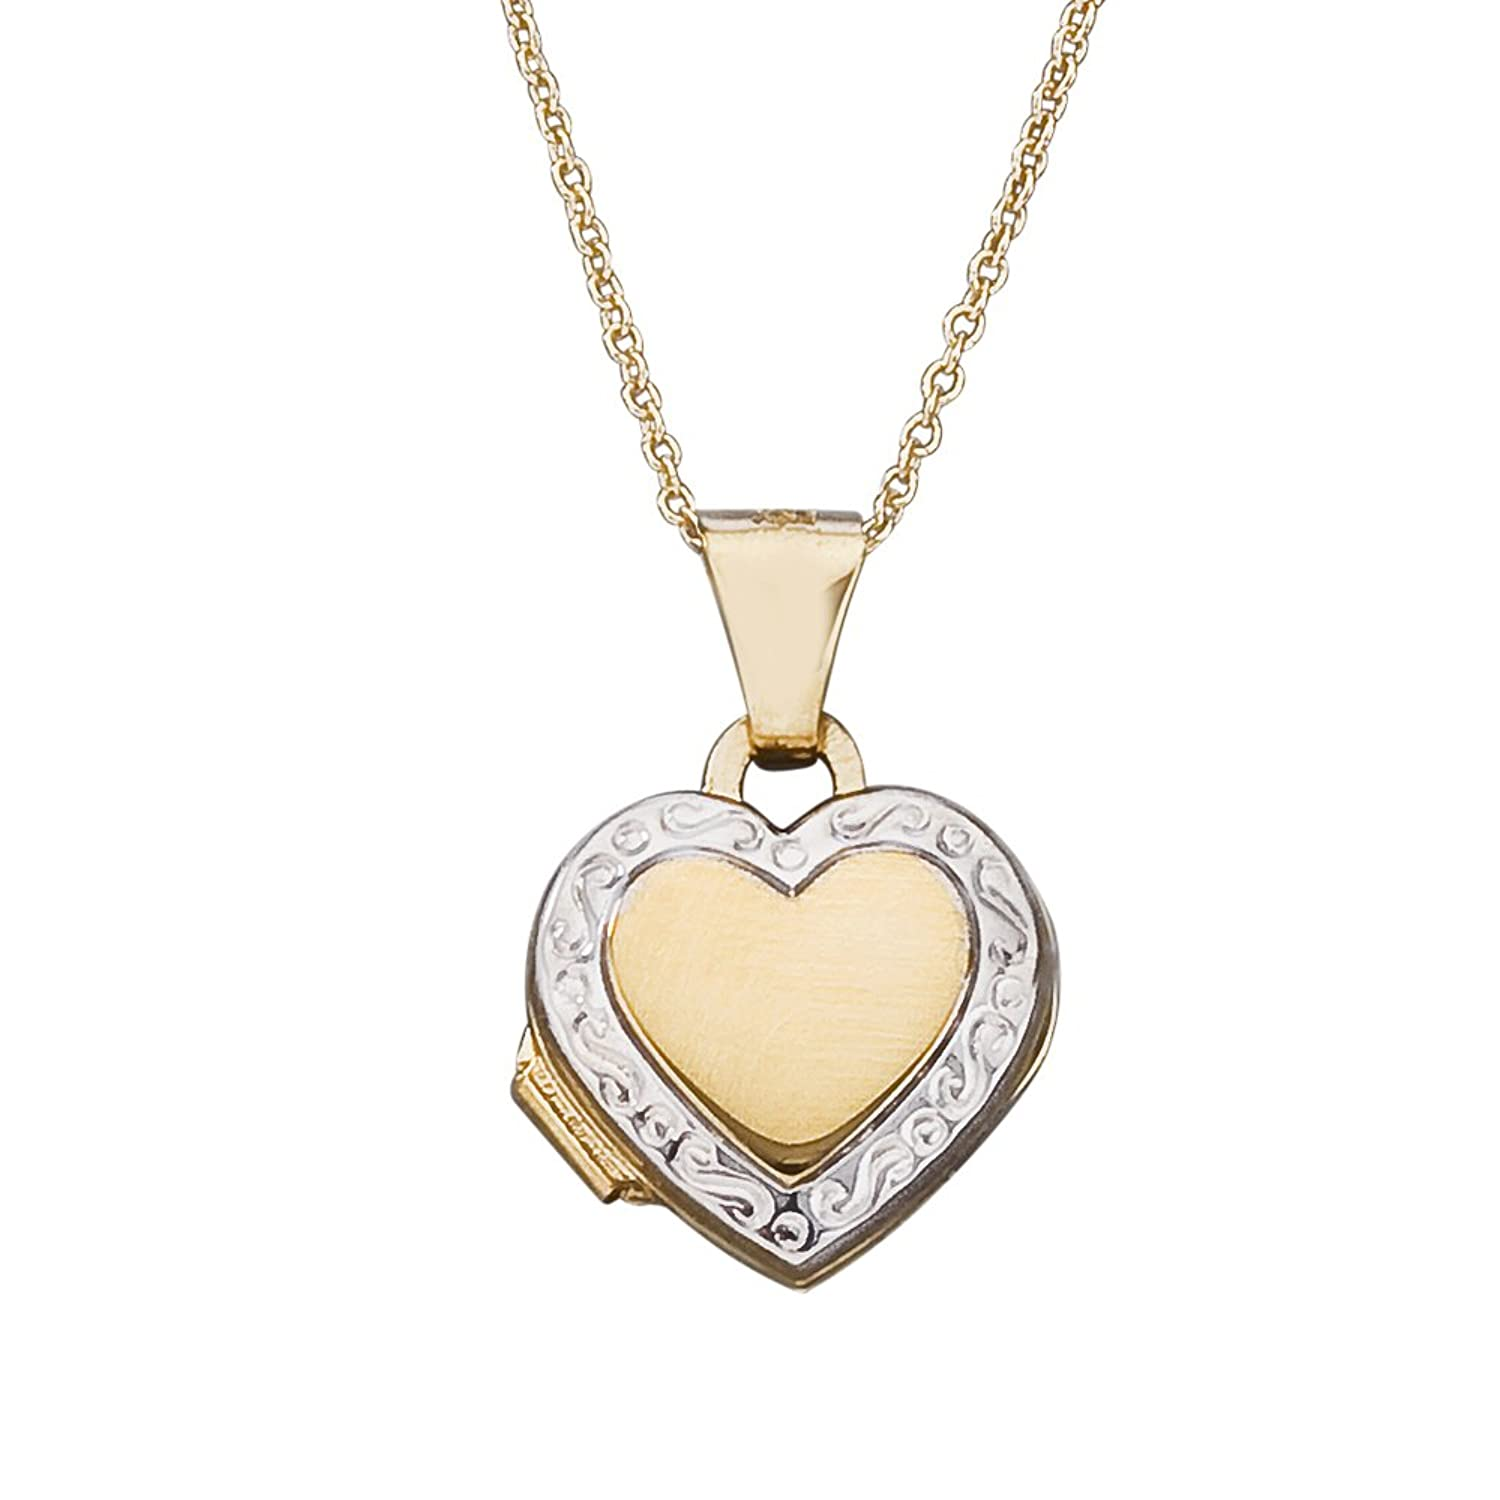 constrain m pendants pendant hei jewelry small g necklaces tiffany ed gold chain locket in heart fmt fit co wid id